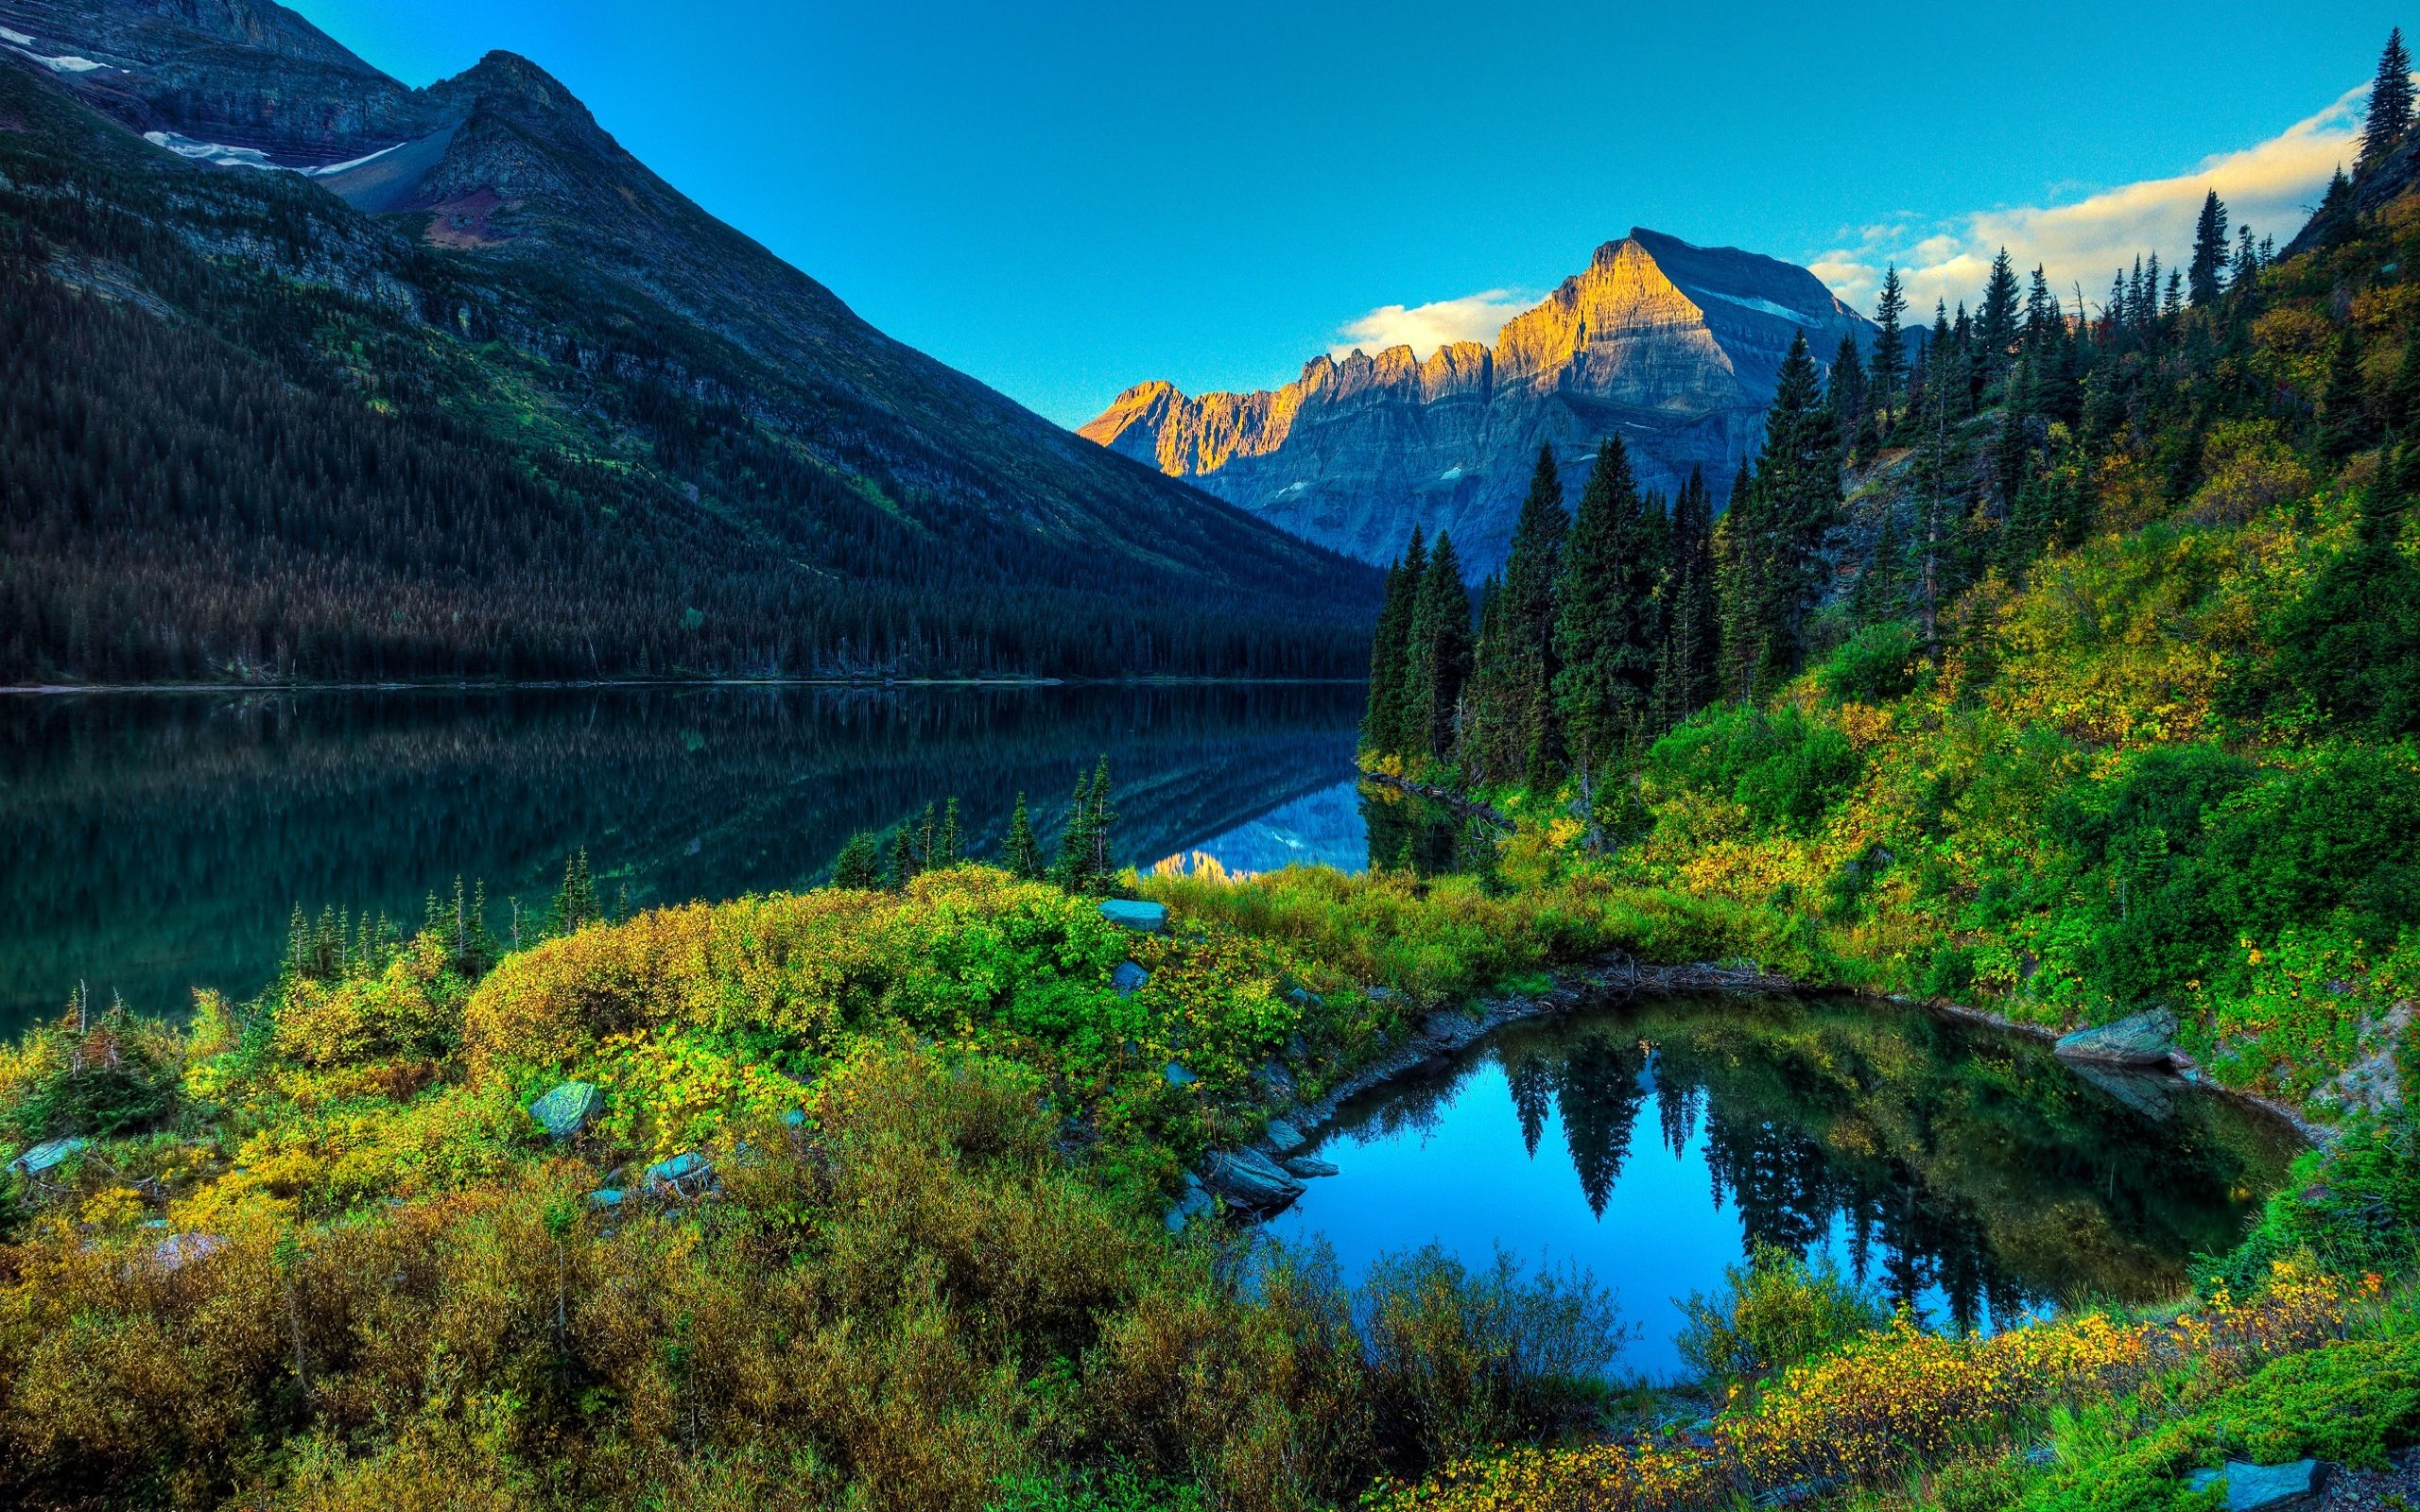 Lake Mountain Scenery Wallpapers Hd Wallpapers In 2020 Scenery Wallpaper Landscape Wallpaper Scenery